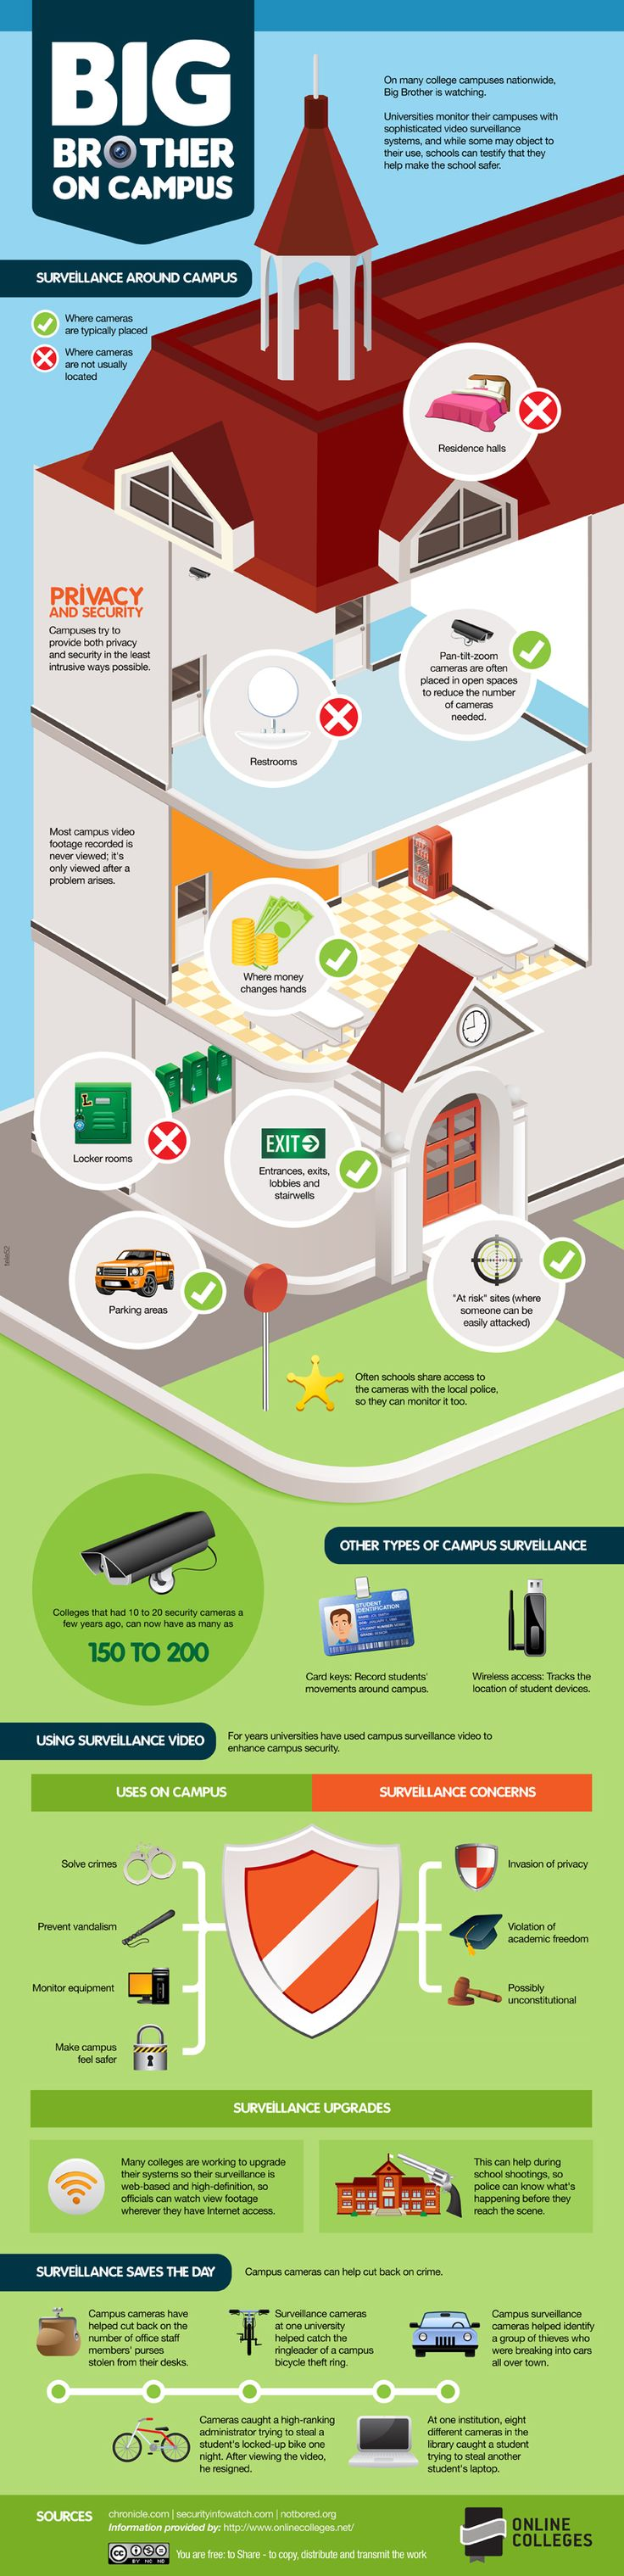 How Does Surveillance On Campus Work? #highered #infographic